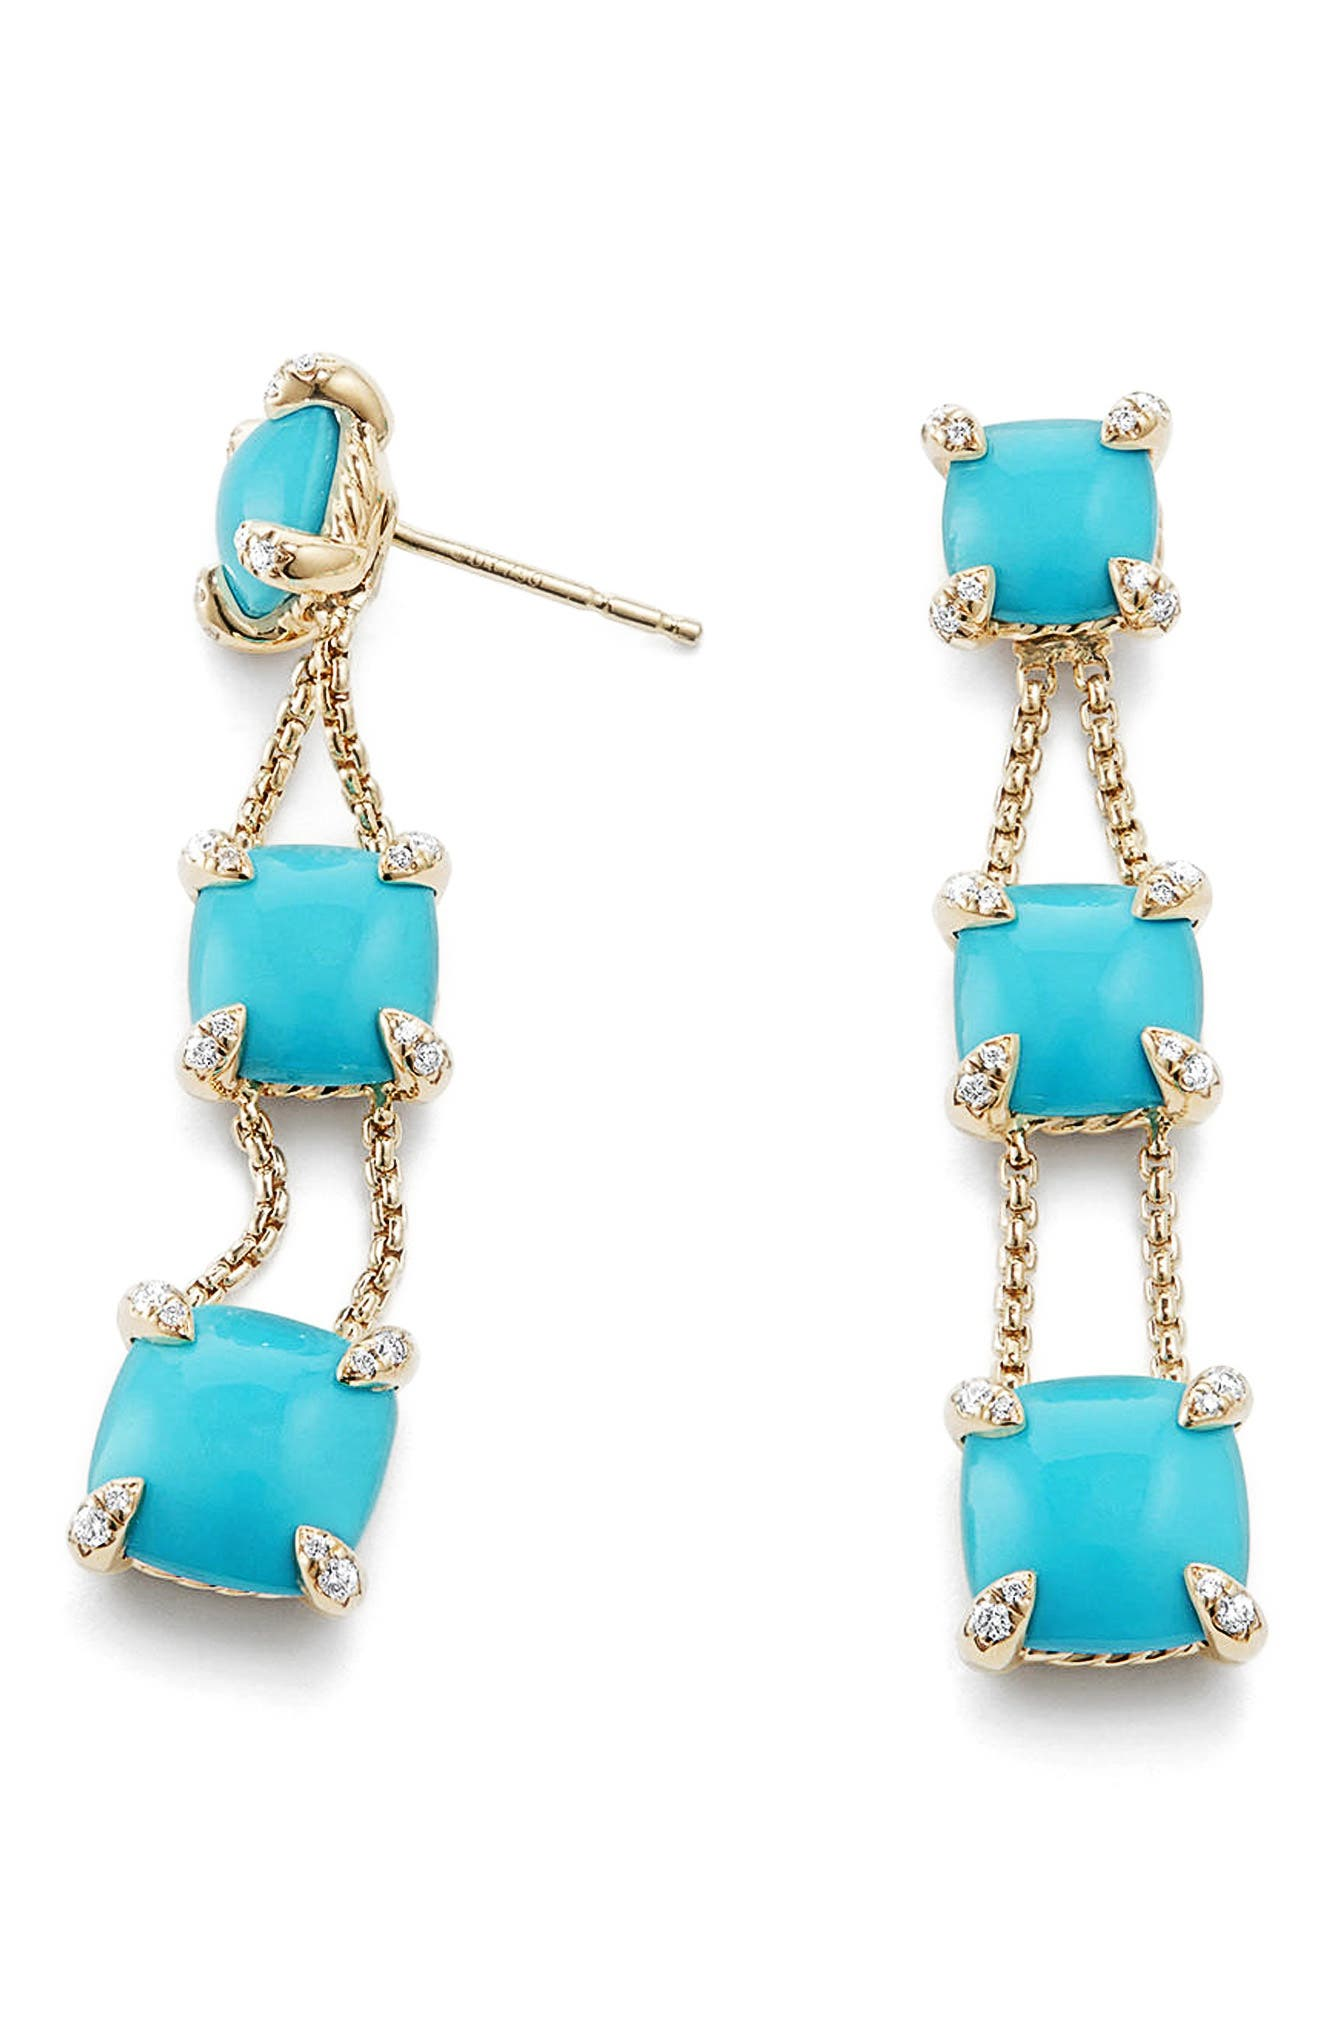 DAVID YURMAN, Châtelaine Linear Chain Earrings in 18K Gold with Semiprecious Stone and Diamonds, Alternate thumbnail 2, color, 445